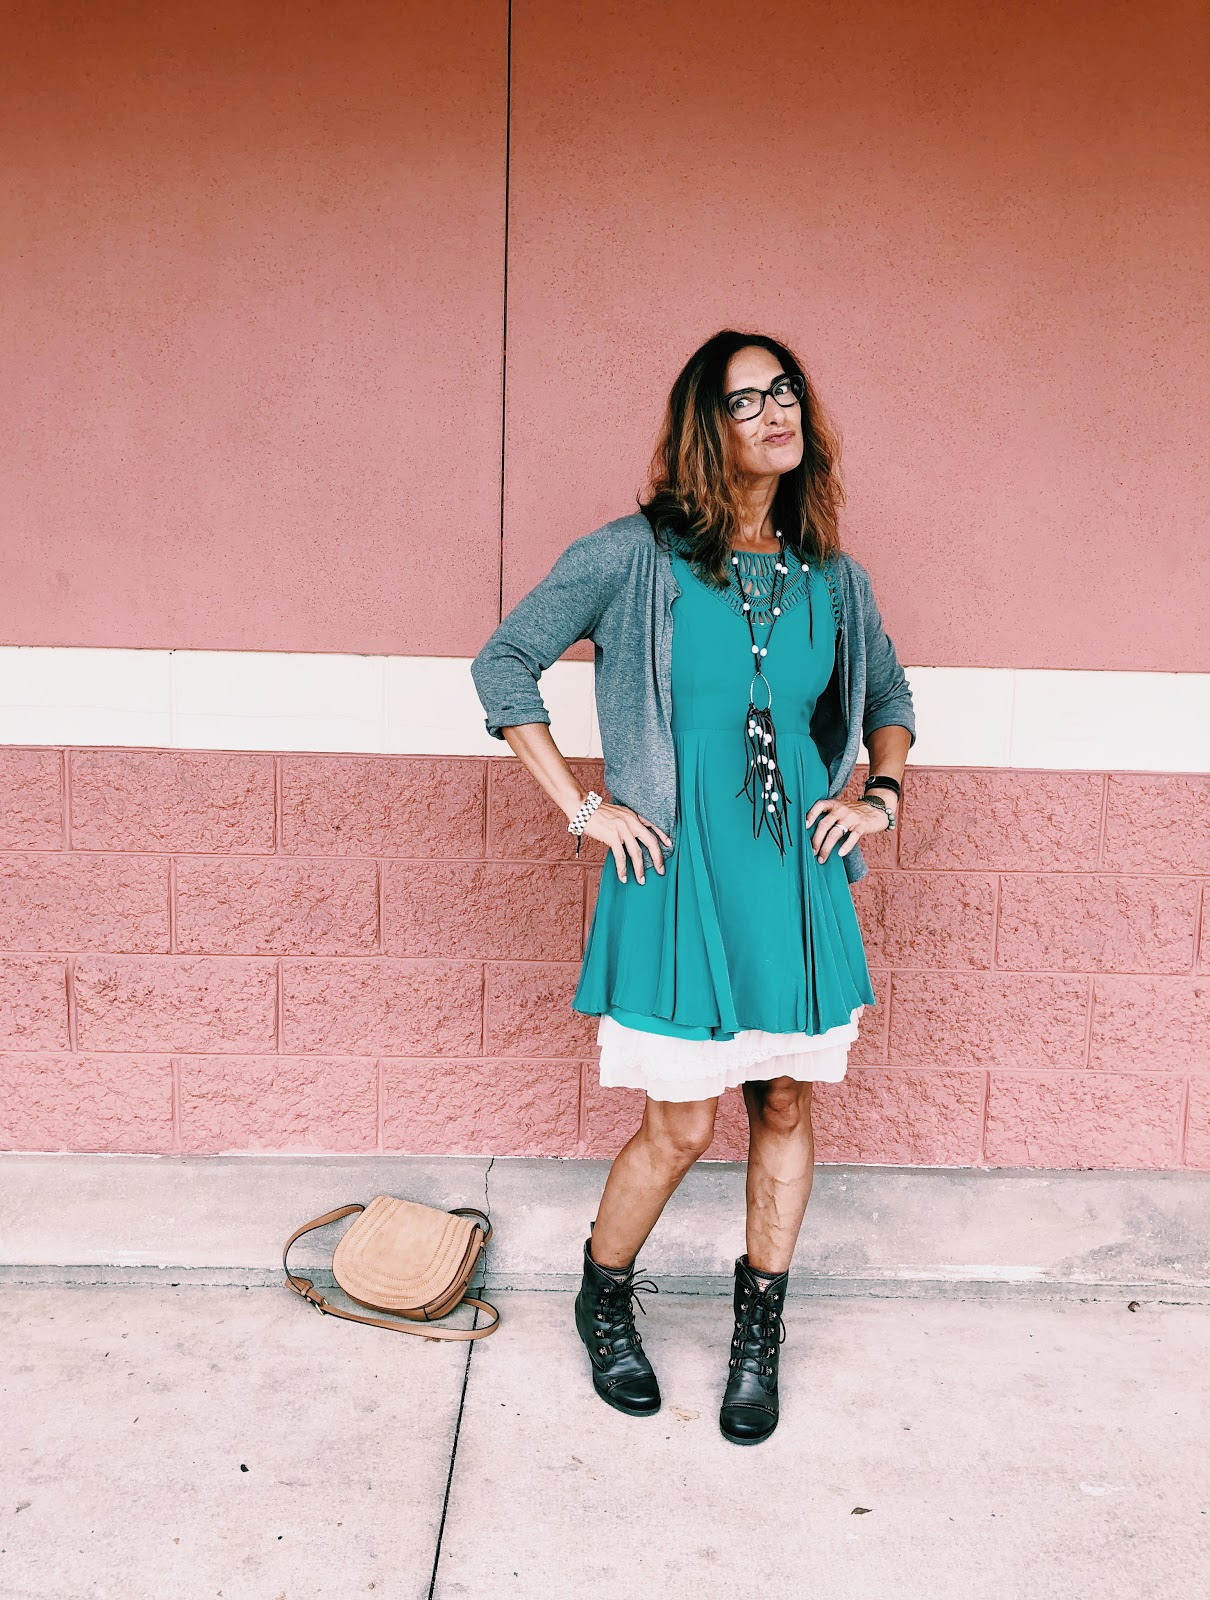 Who Will Be Your Next Muse & The Cutest Turquoise Dress